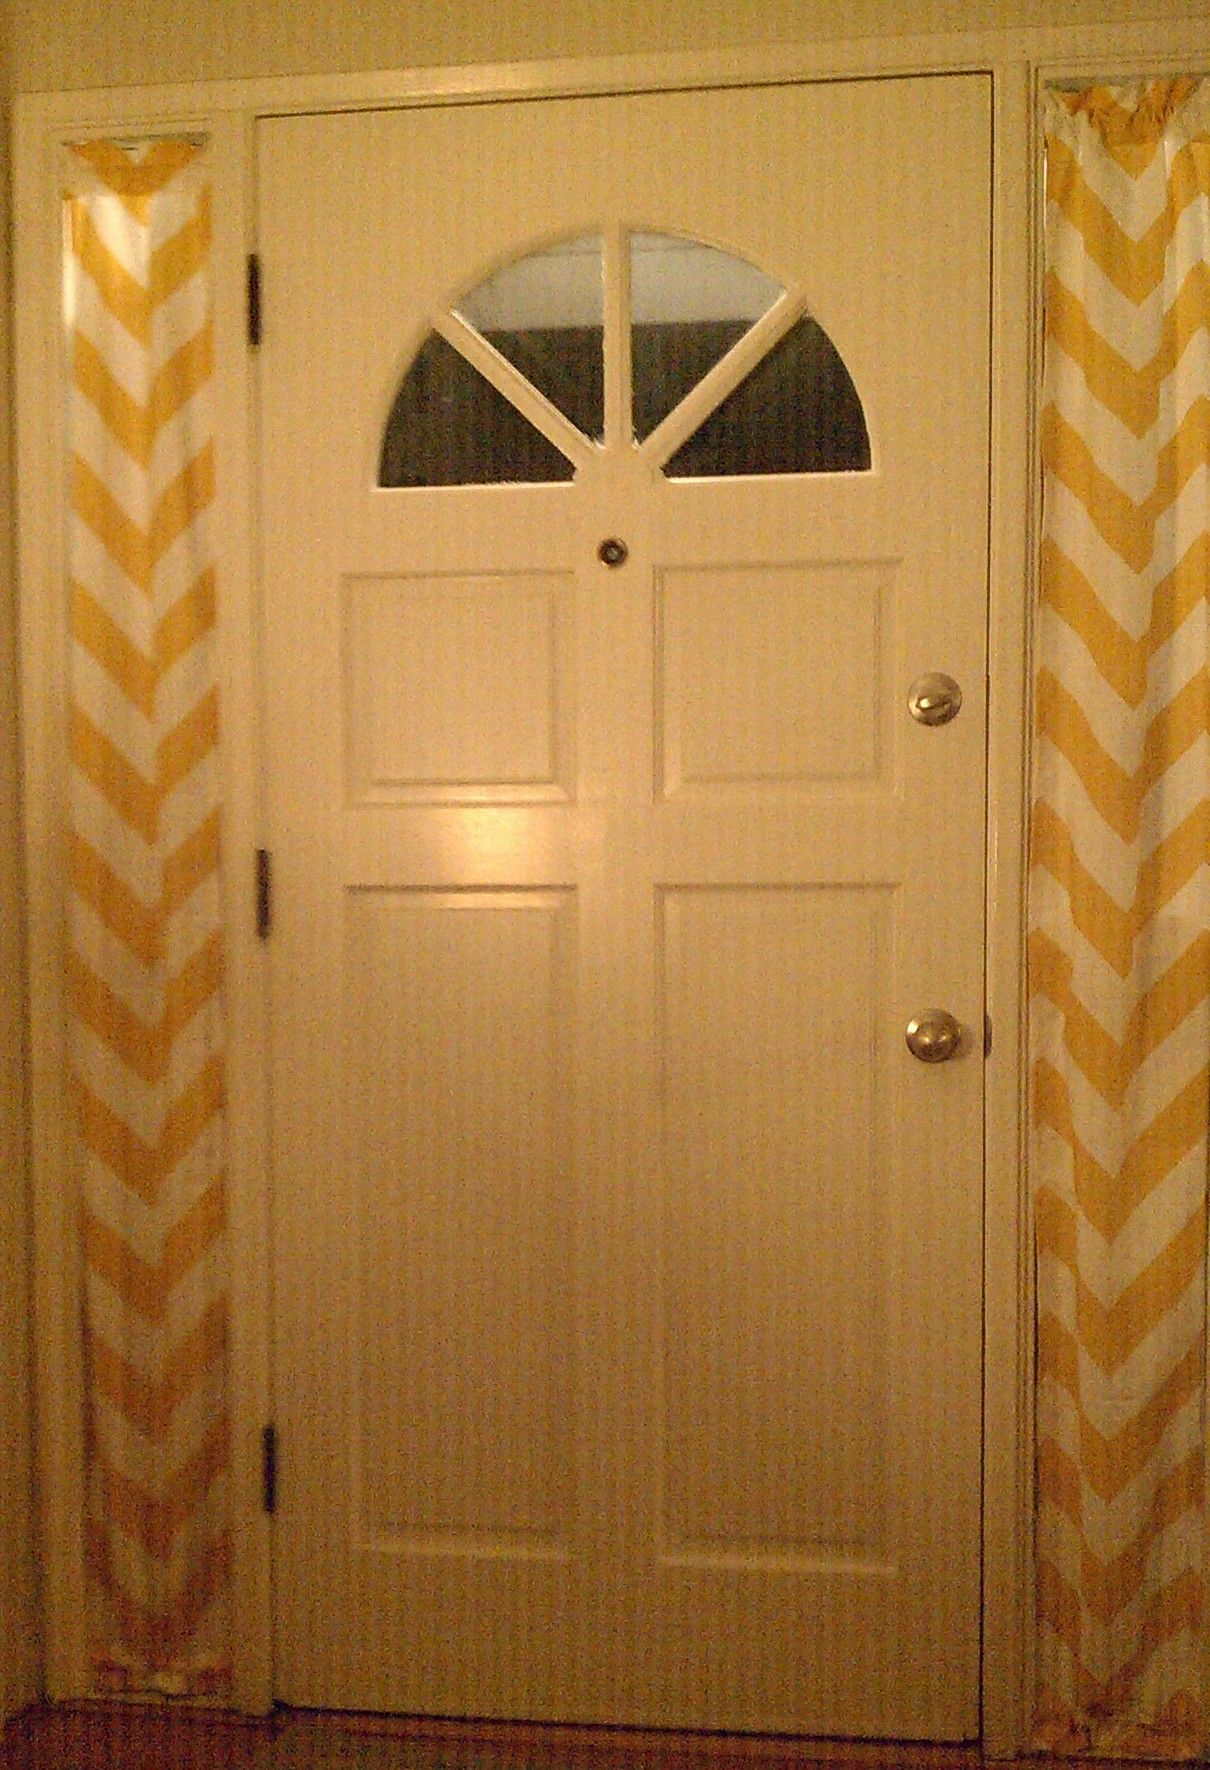 Yellow Chevron Curtains Side Light Windows Sidelight Windows Front Doors With Windows Window Treatments